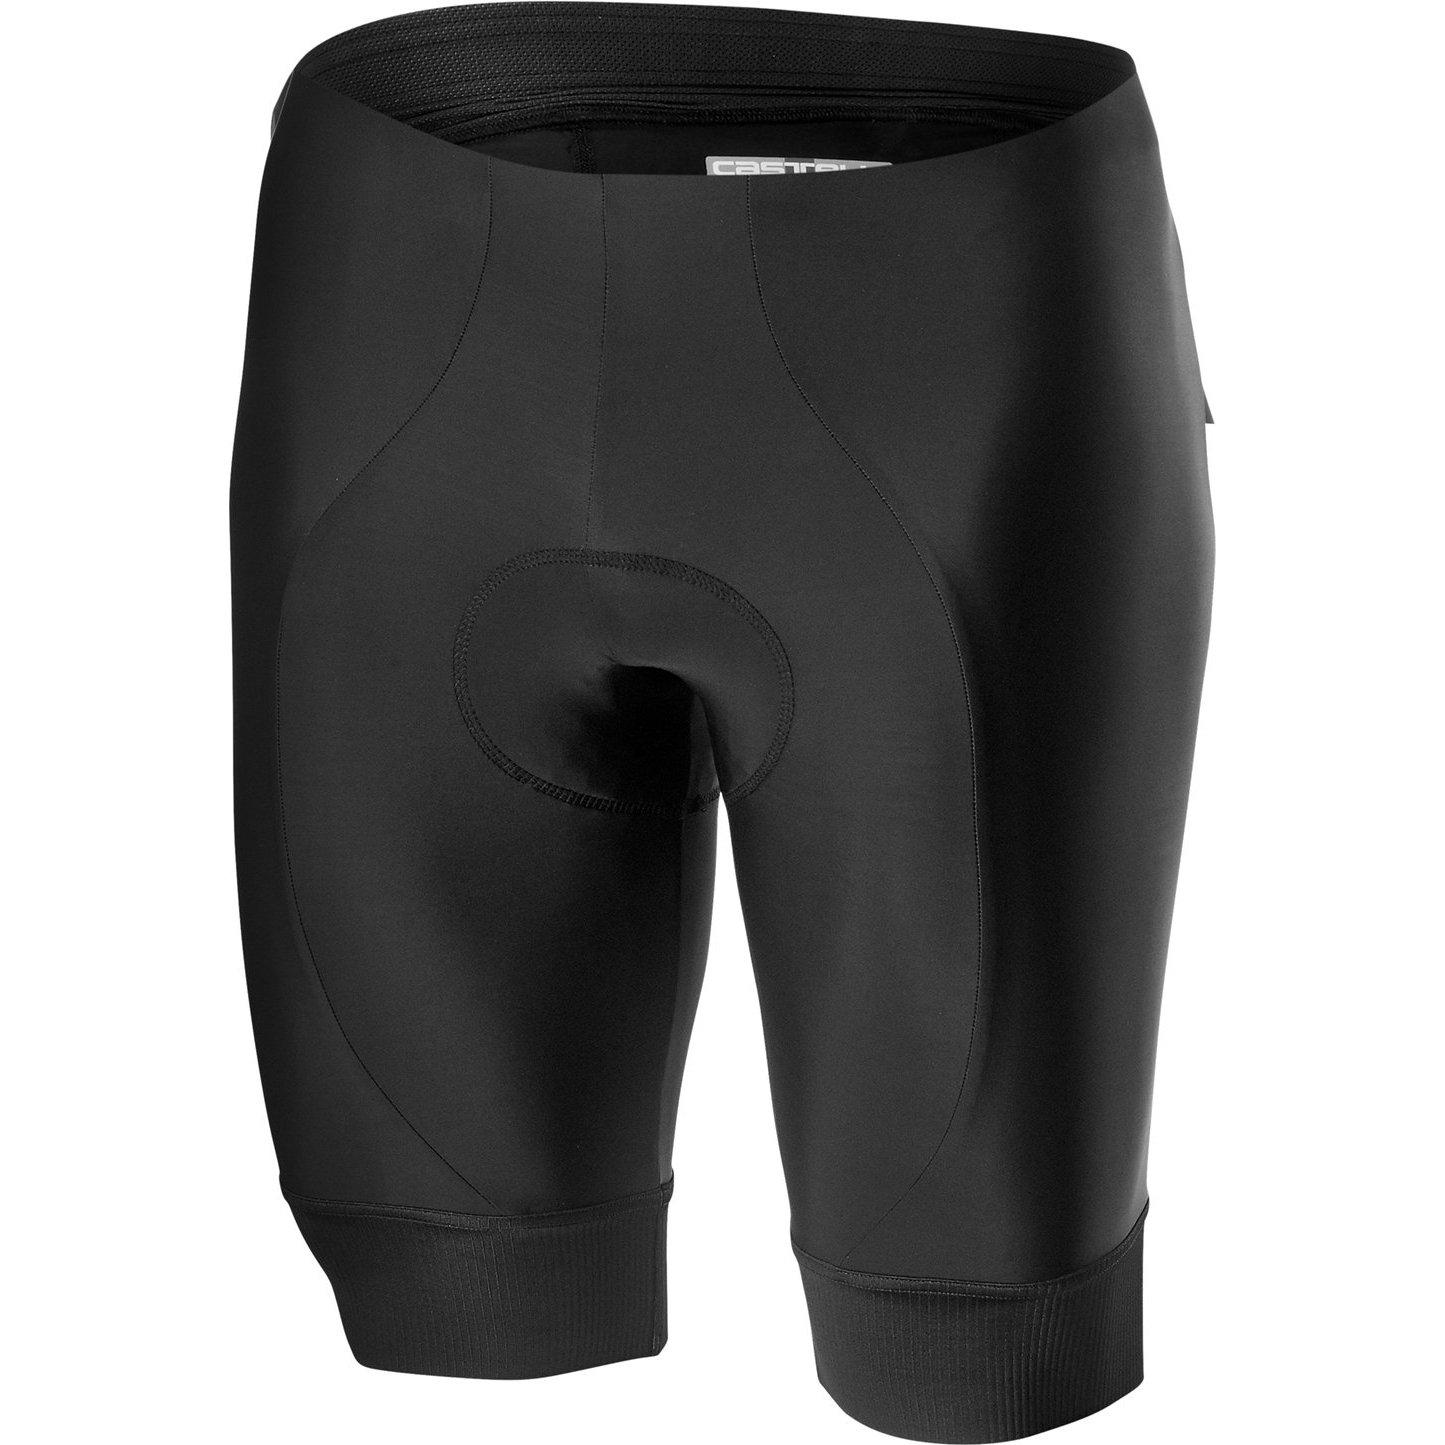 Castelli-Castelli Entrata Short-Black-S-CS200090102-saddleback-elite-performance-cycling